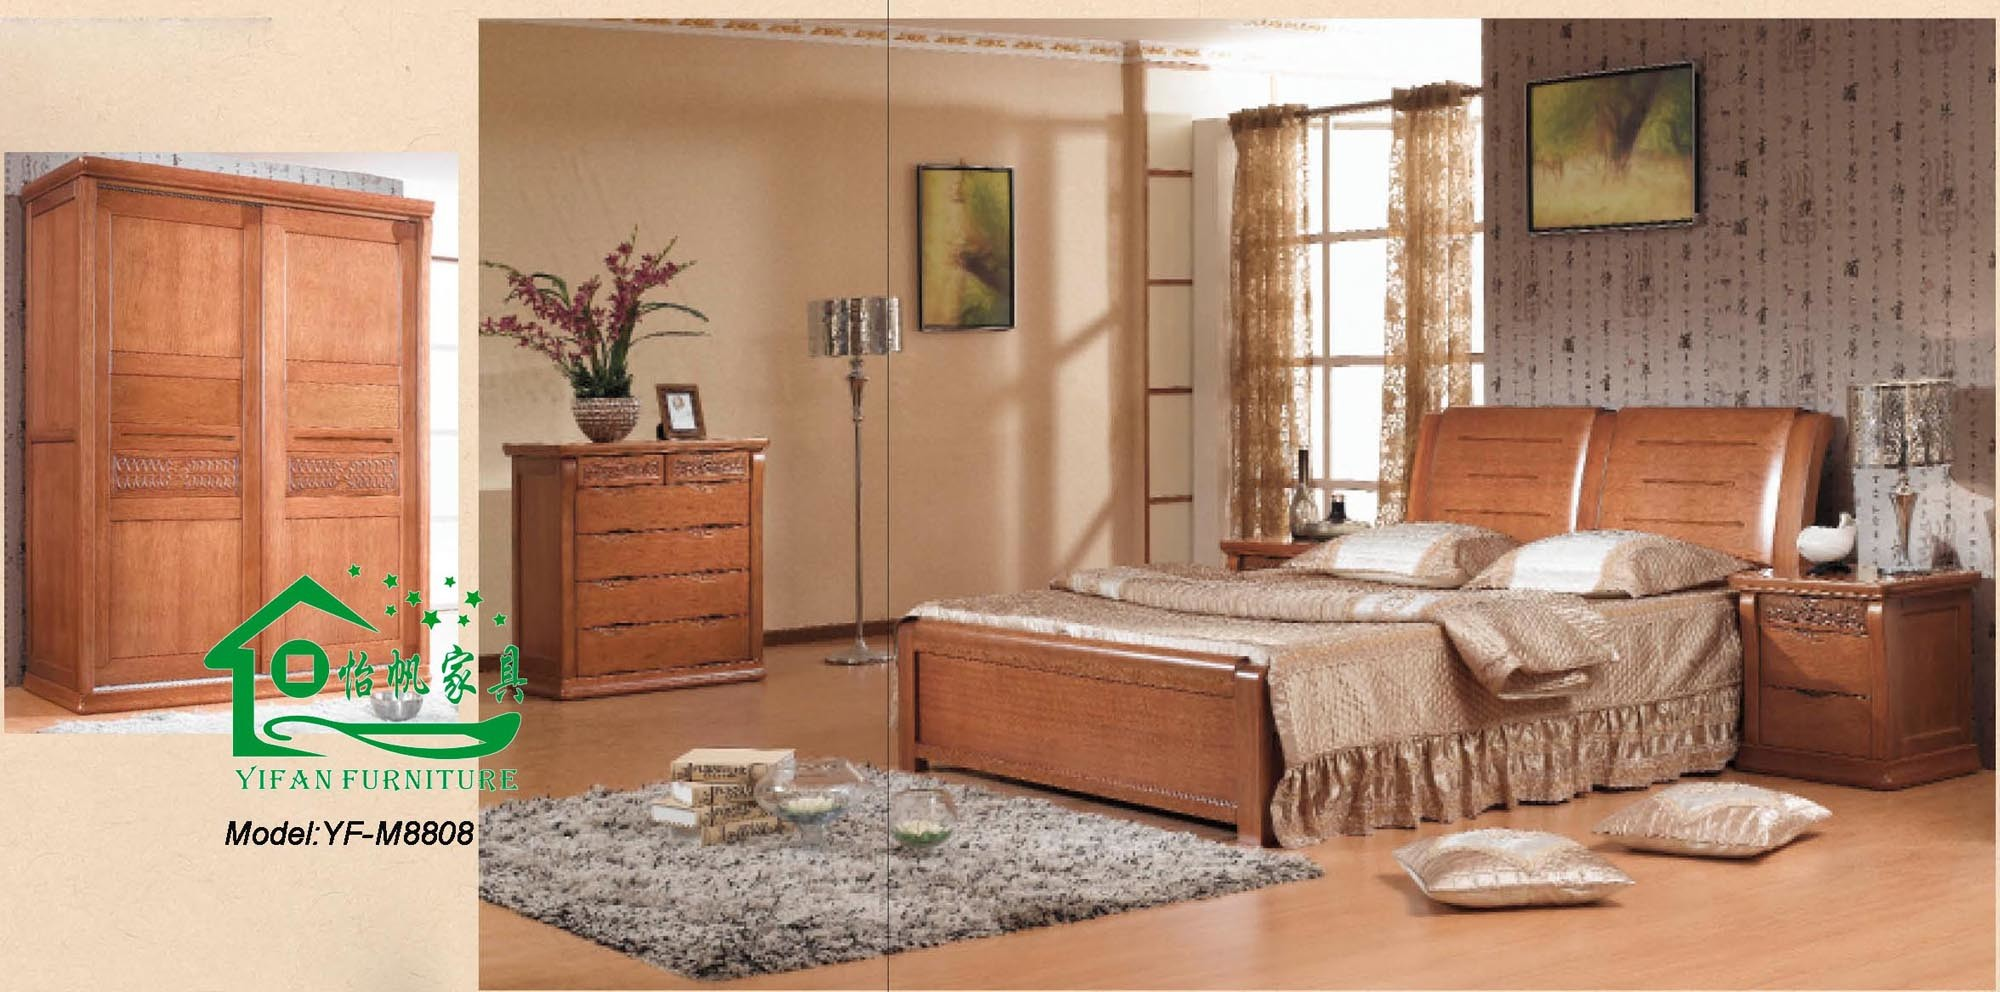 Meuble De Chambre A Coucher En Bois Bedroom Furniture With 80 Inch Bed W830 Bedroom